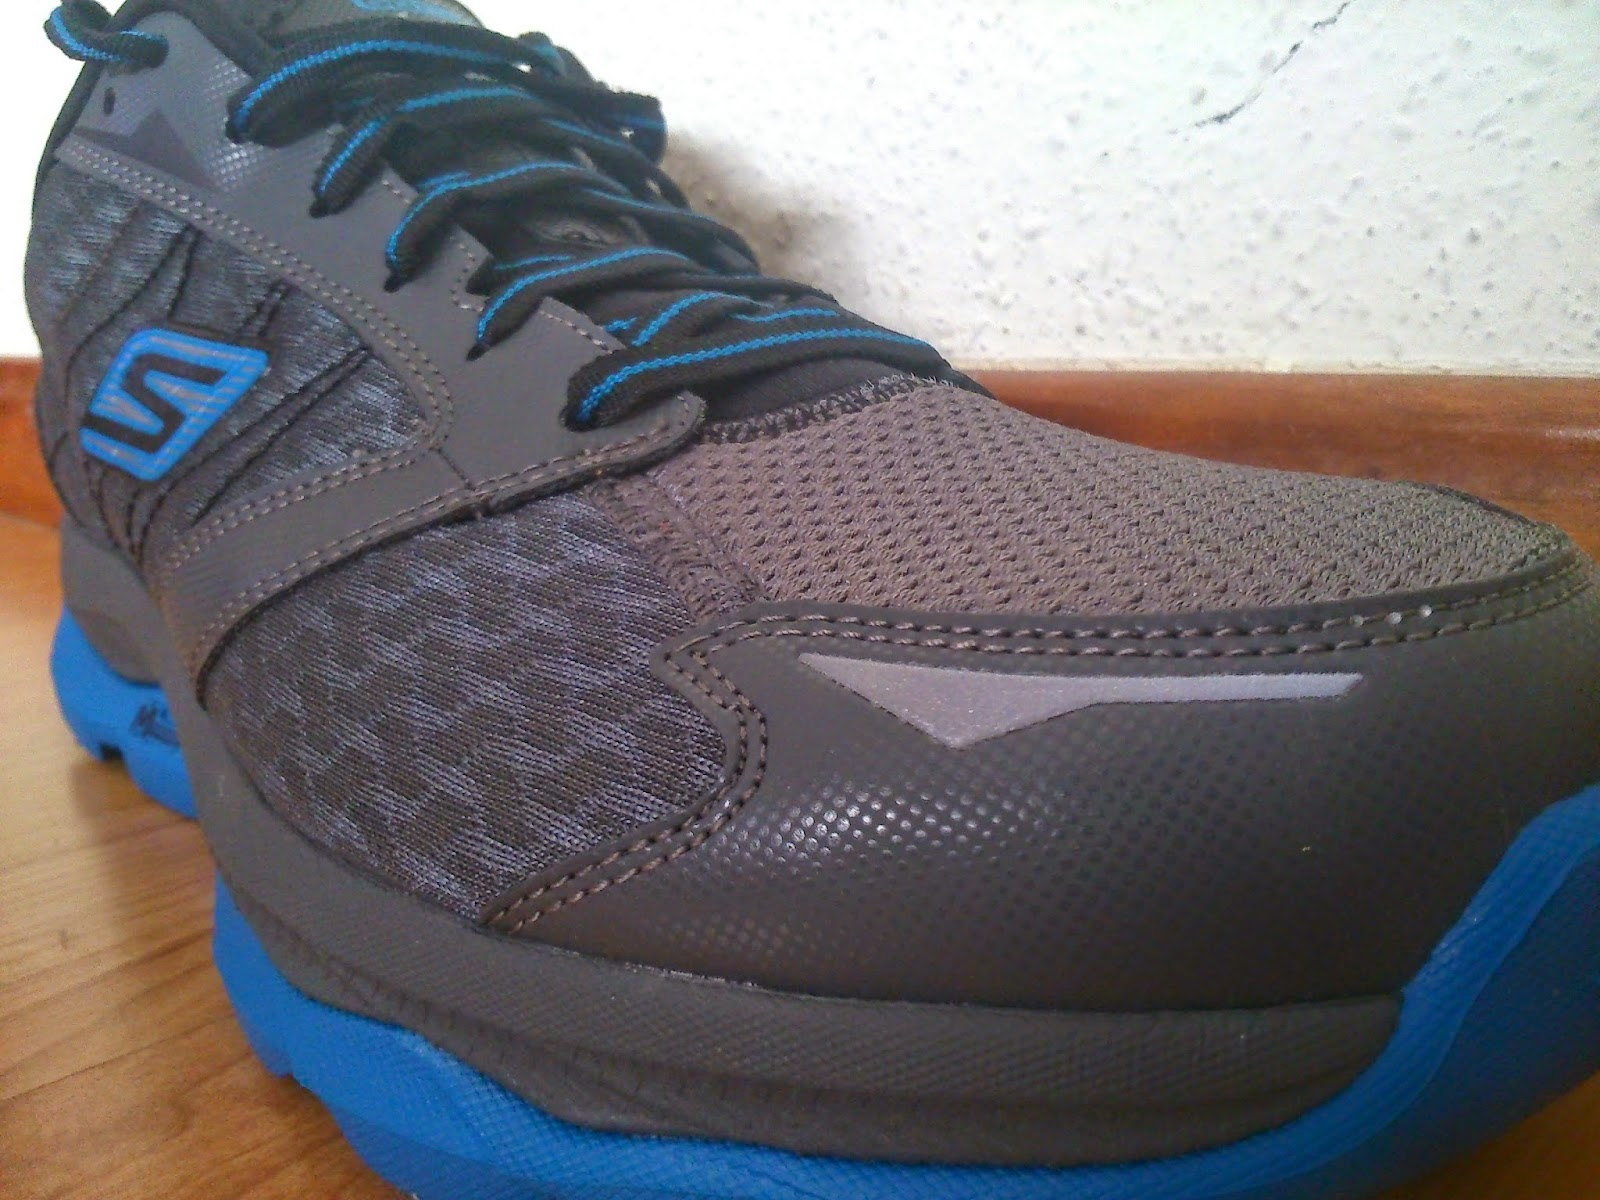 skechers gorun ultra trail running